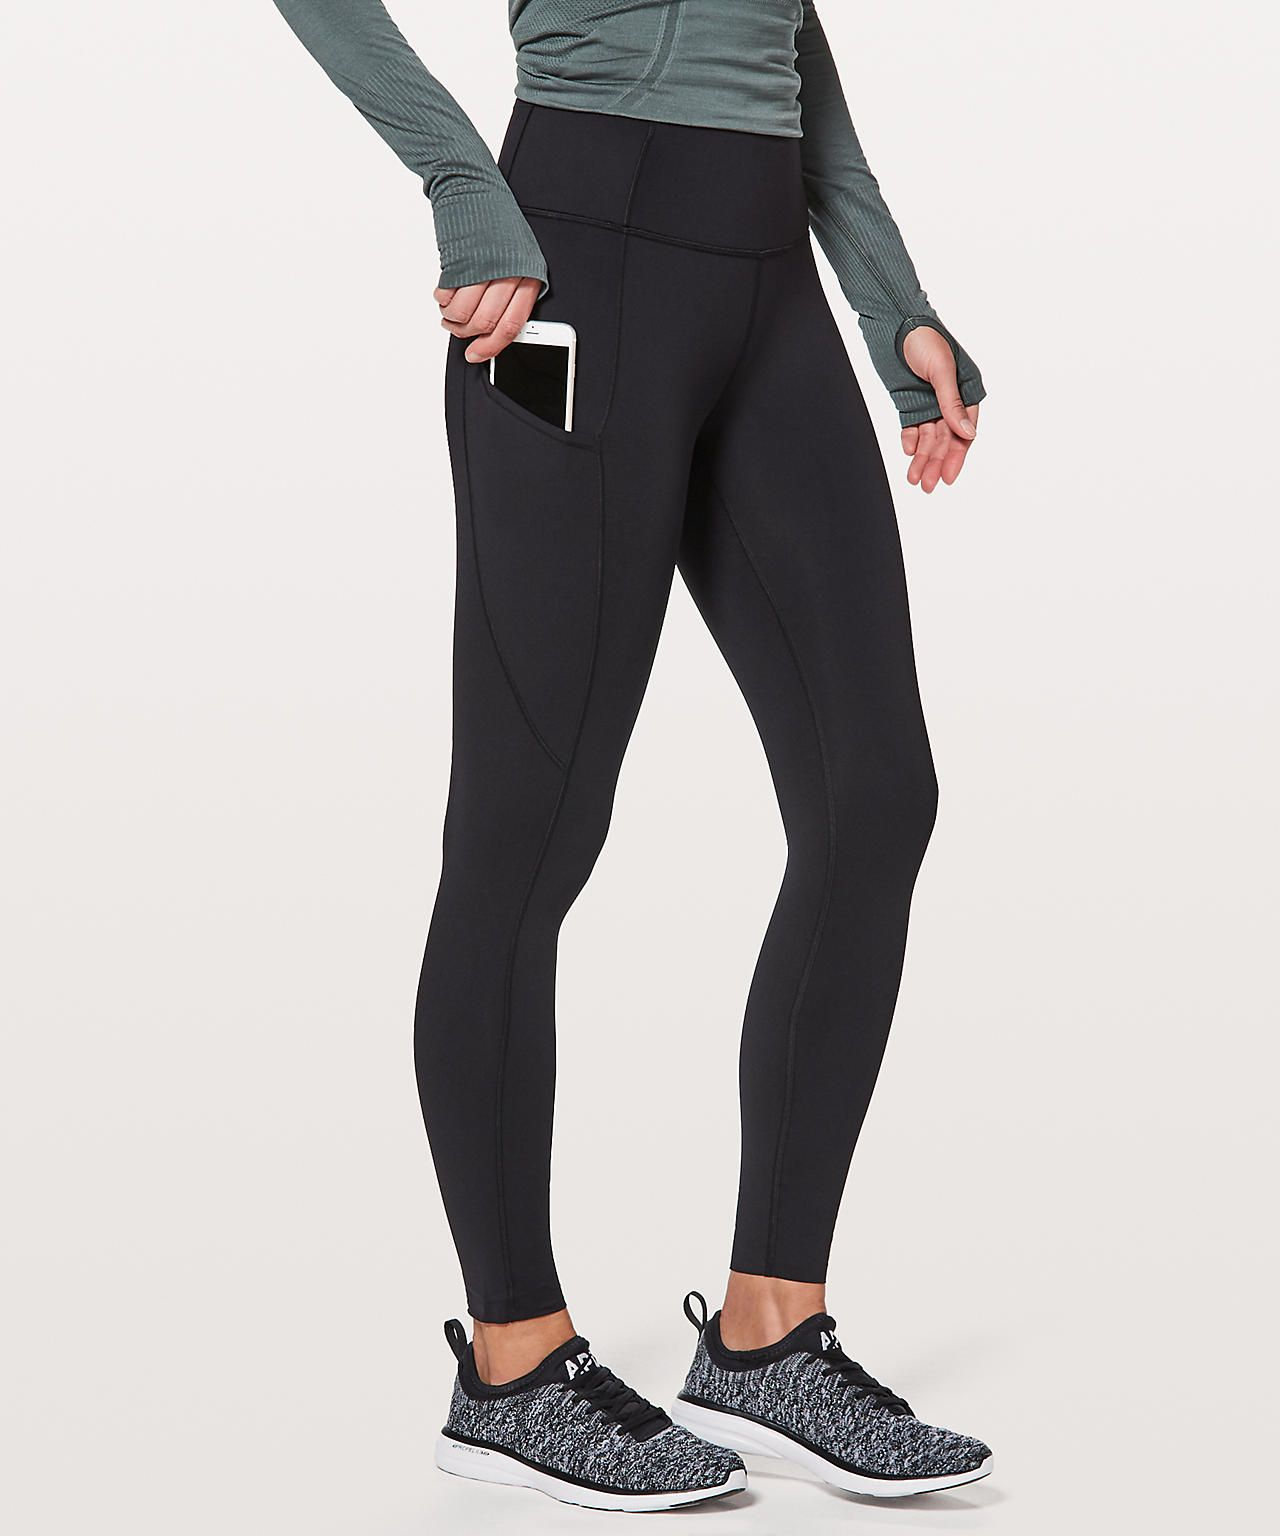 ee30dc78b7a4bb Lululemon speed tights - best workout pants ever | Products I Love ...